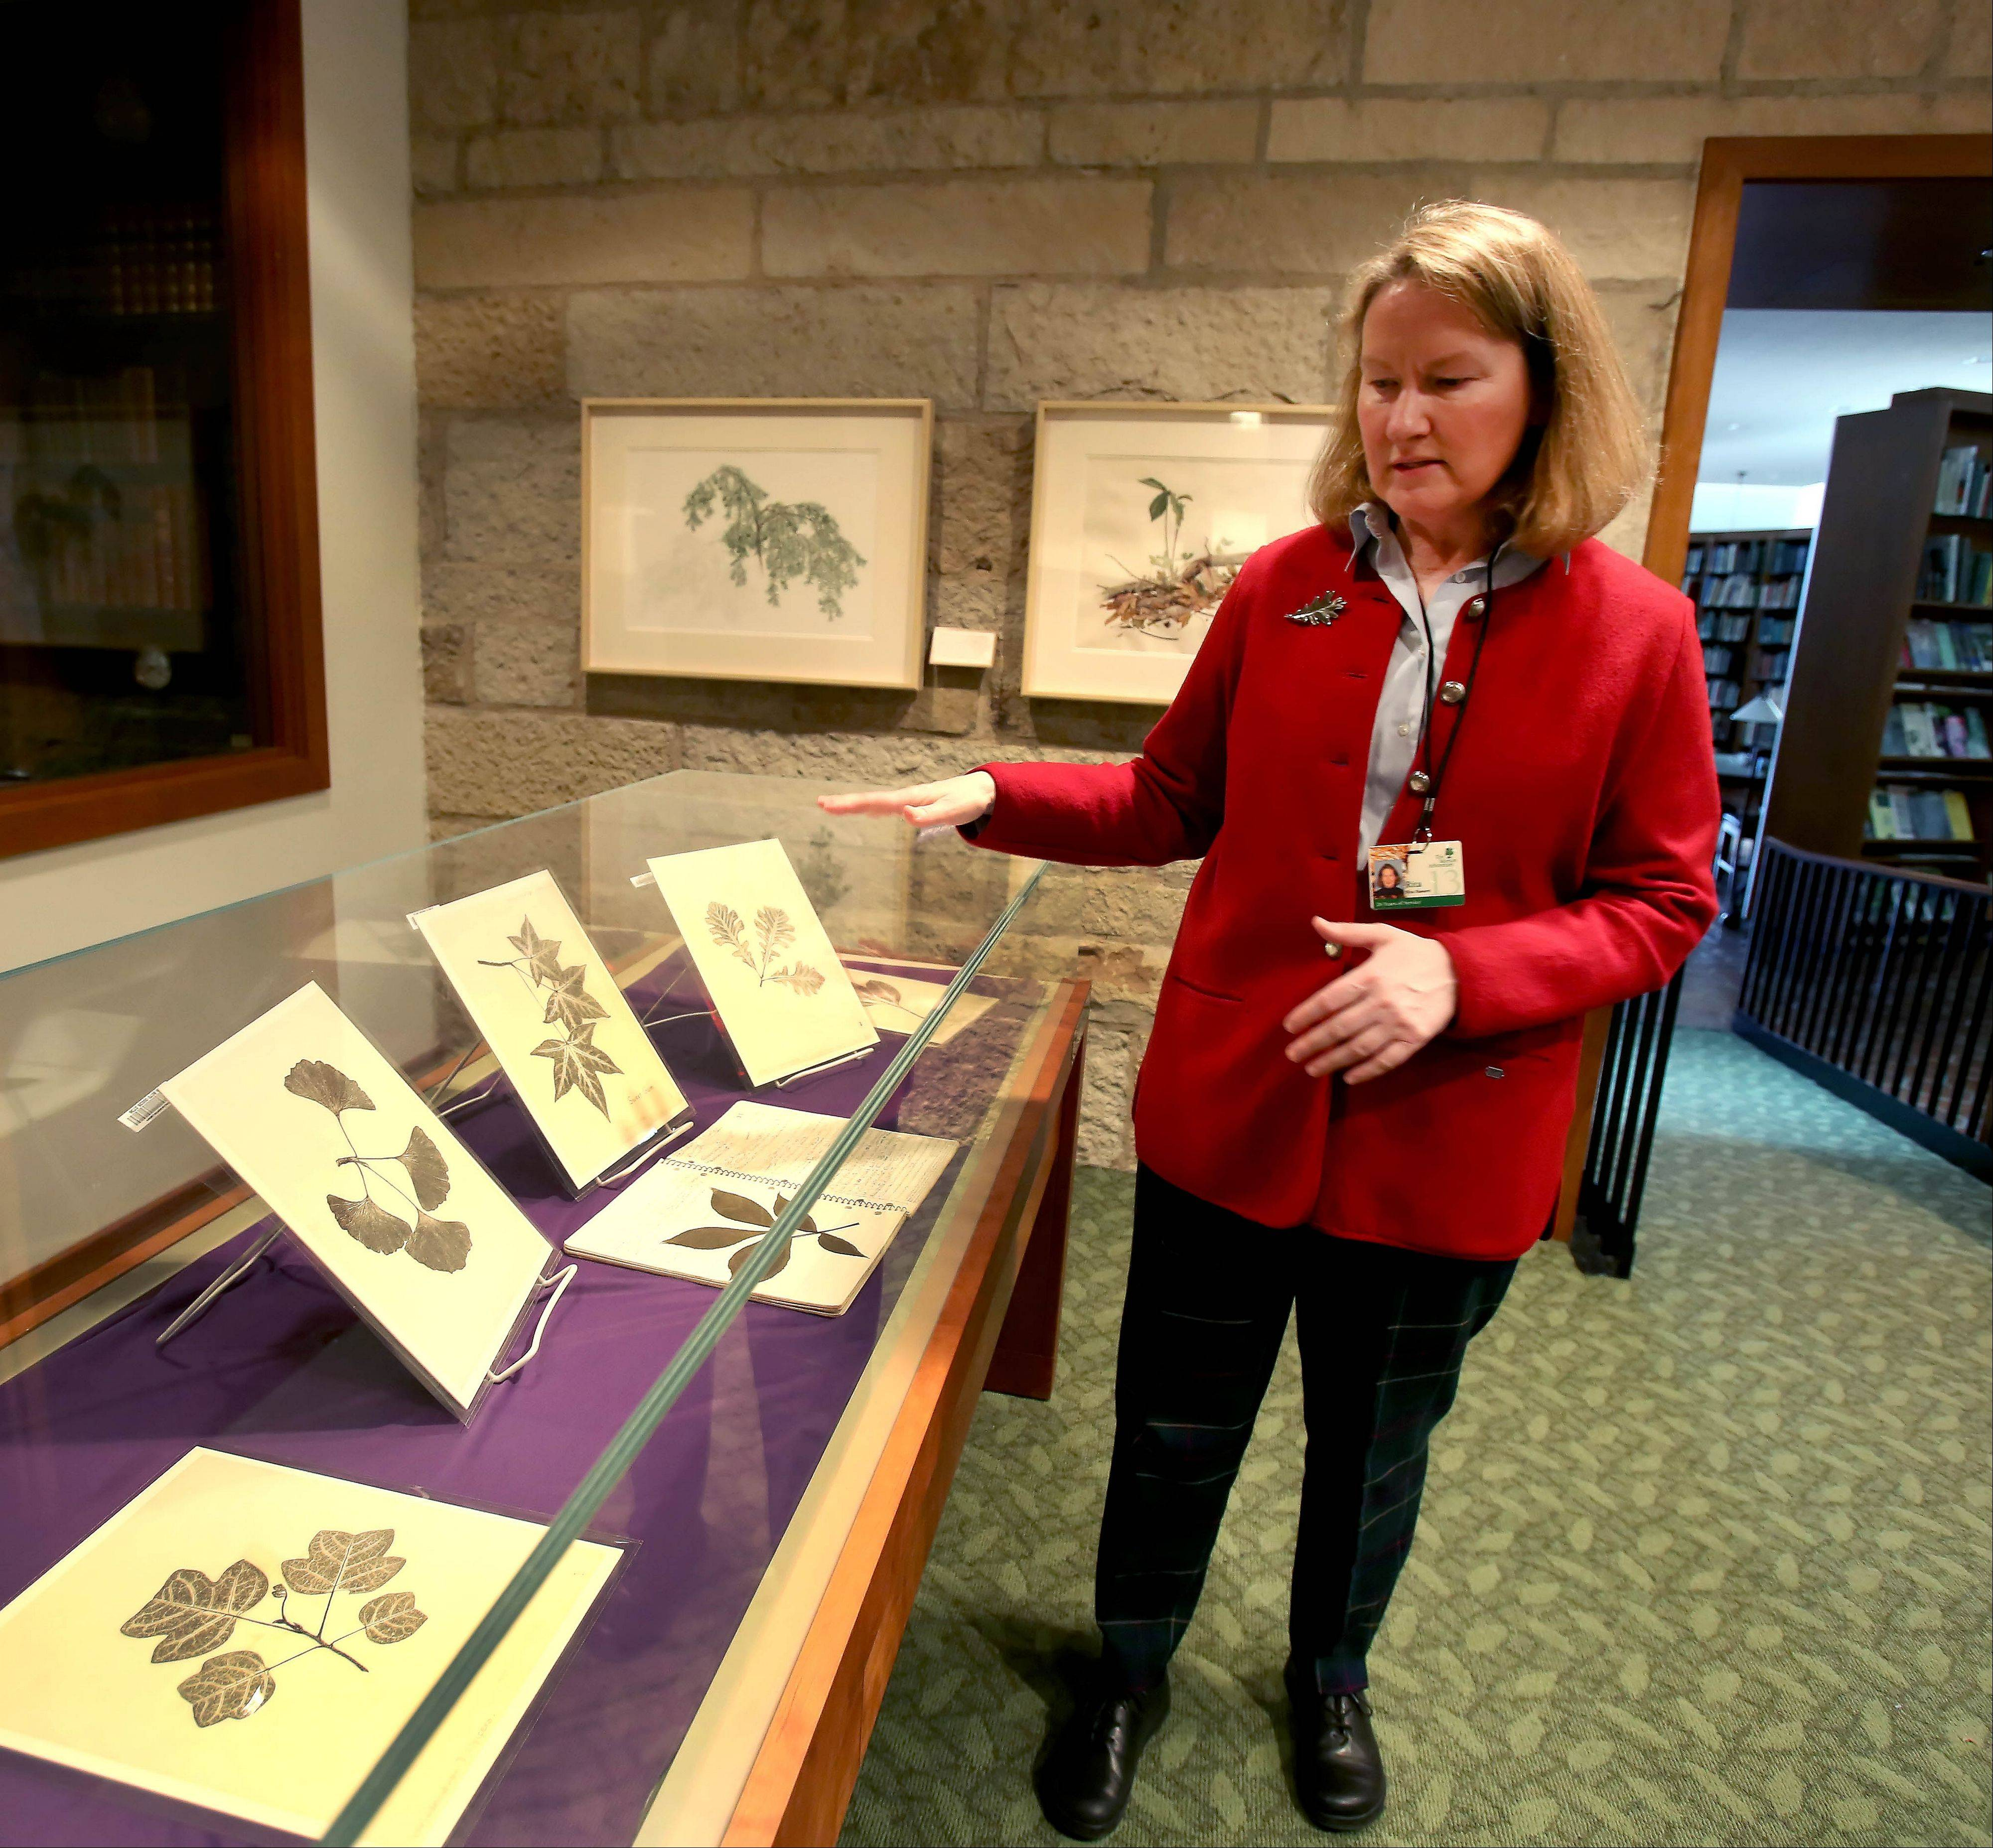 Rita Hassert, collections manager at Sterling Morton Library, shows some of the nature prints done by Alice Thoms Vitale.